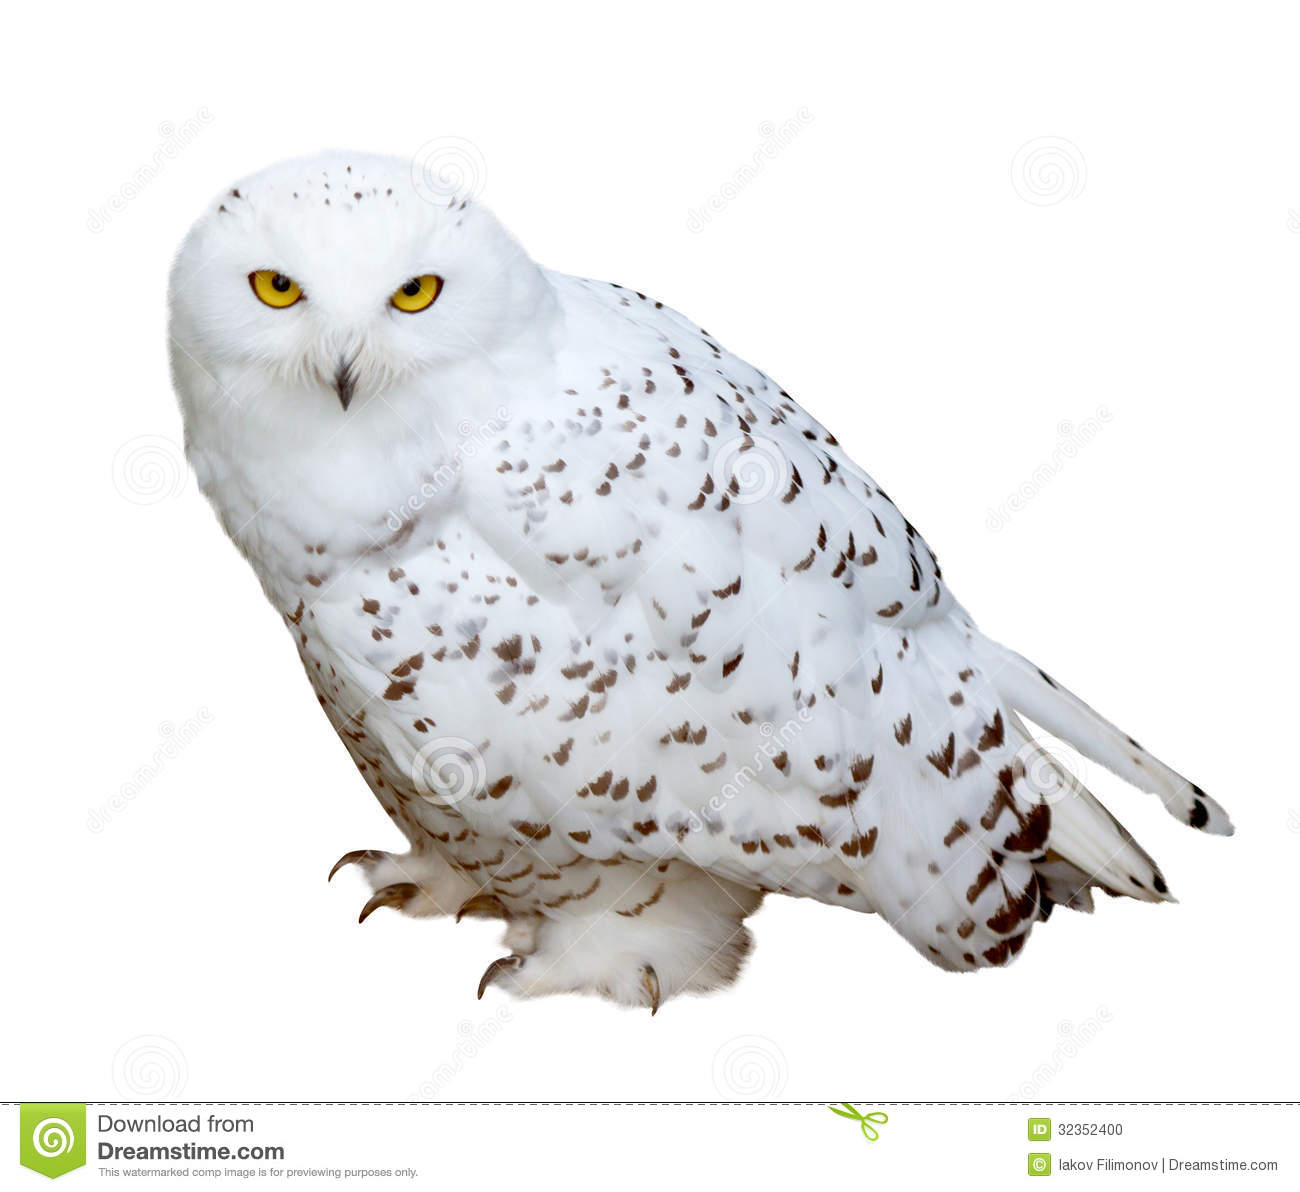 Real owl clipart png freeuse stock Snowy Owl Clipart - Clipart Kid png freeuse stock